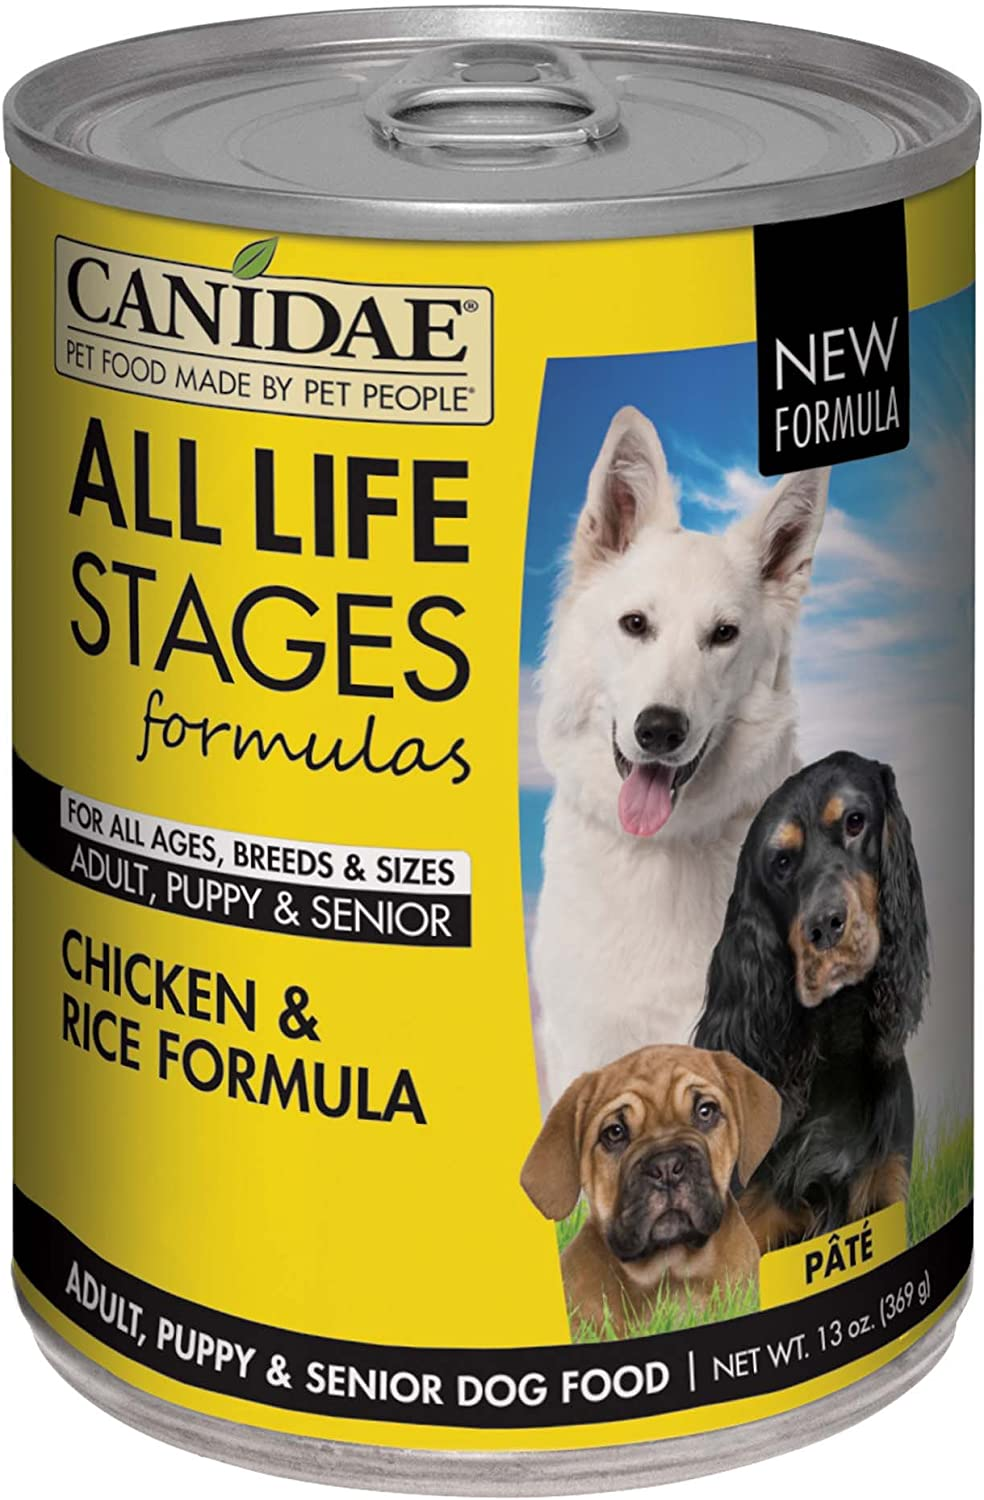 Canidae Life Stages Canned Dog Food For Puppies, Adults & Seniors, 12 Pack